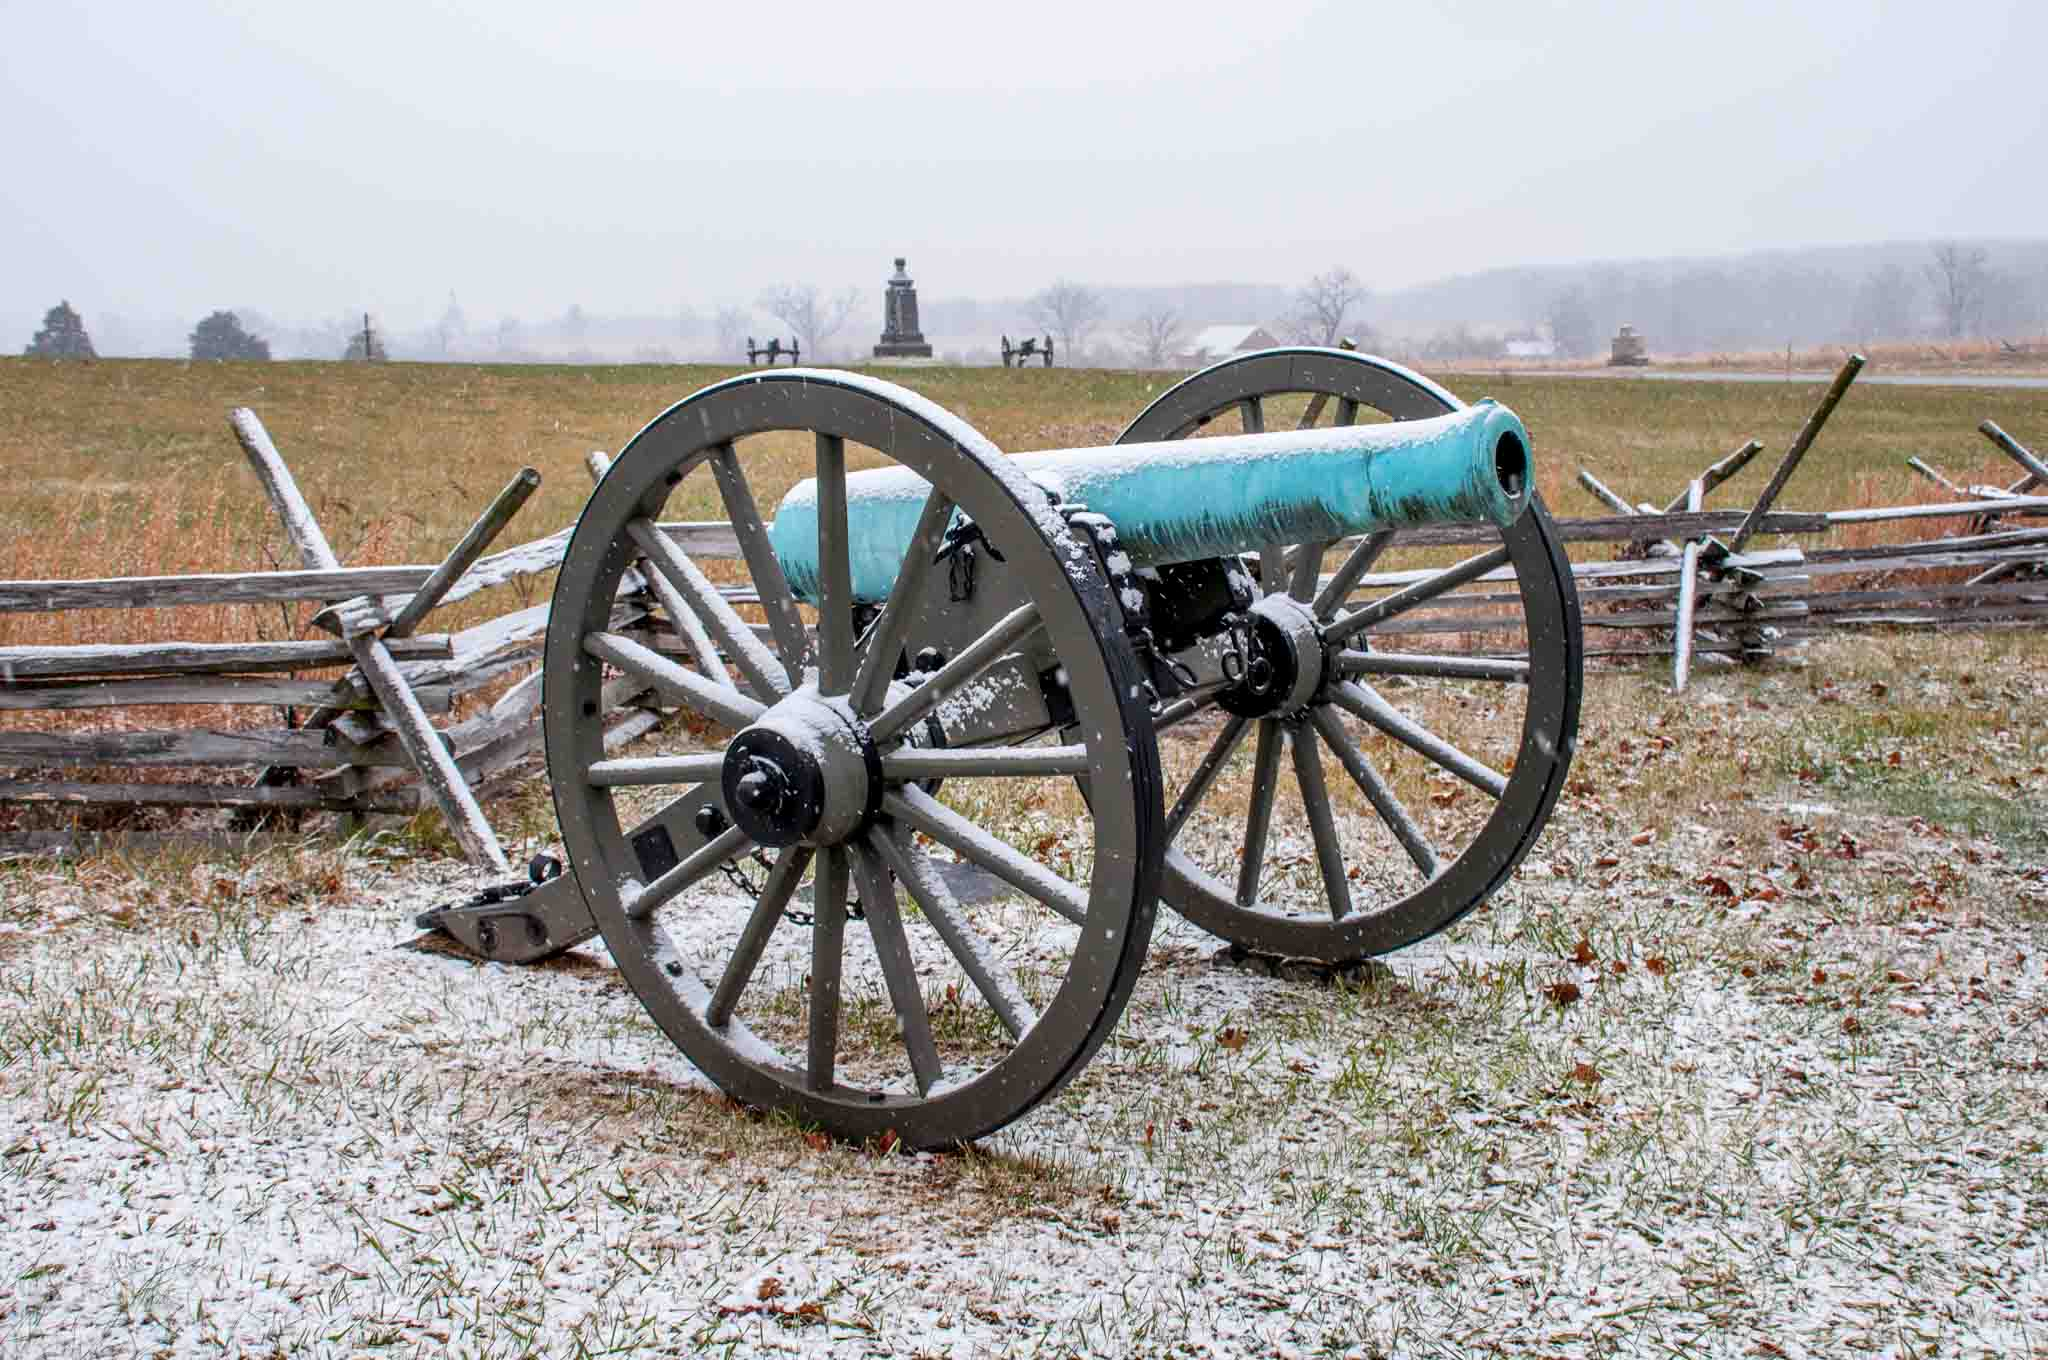 Cannon on the Gettysburg Battlefield covered in snow